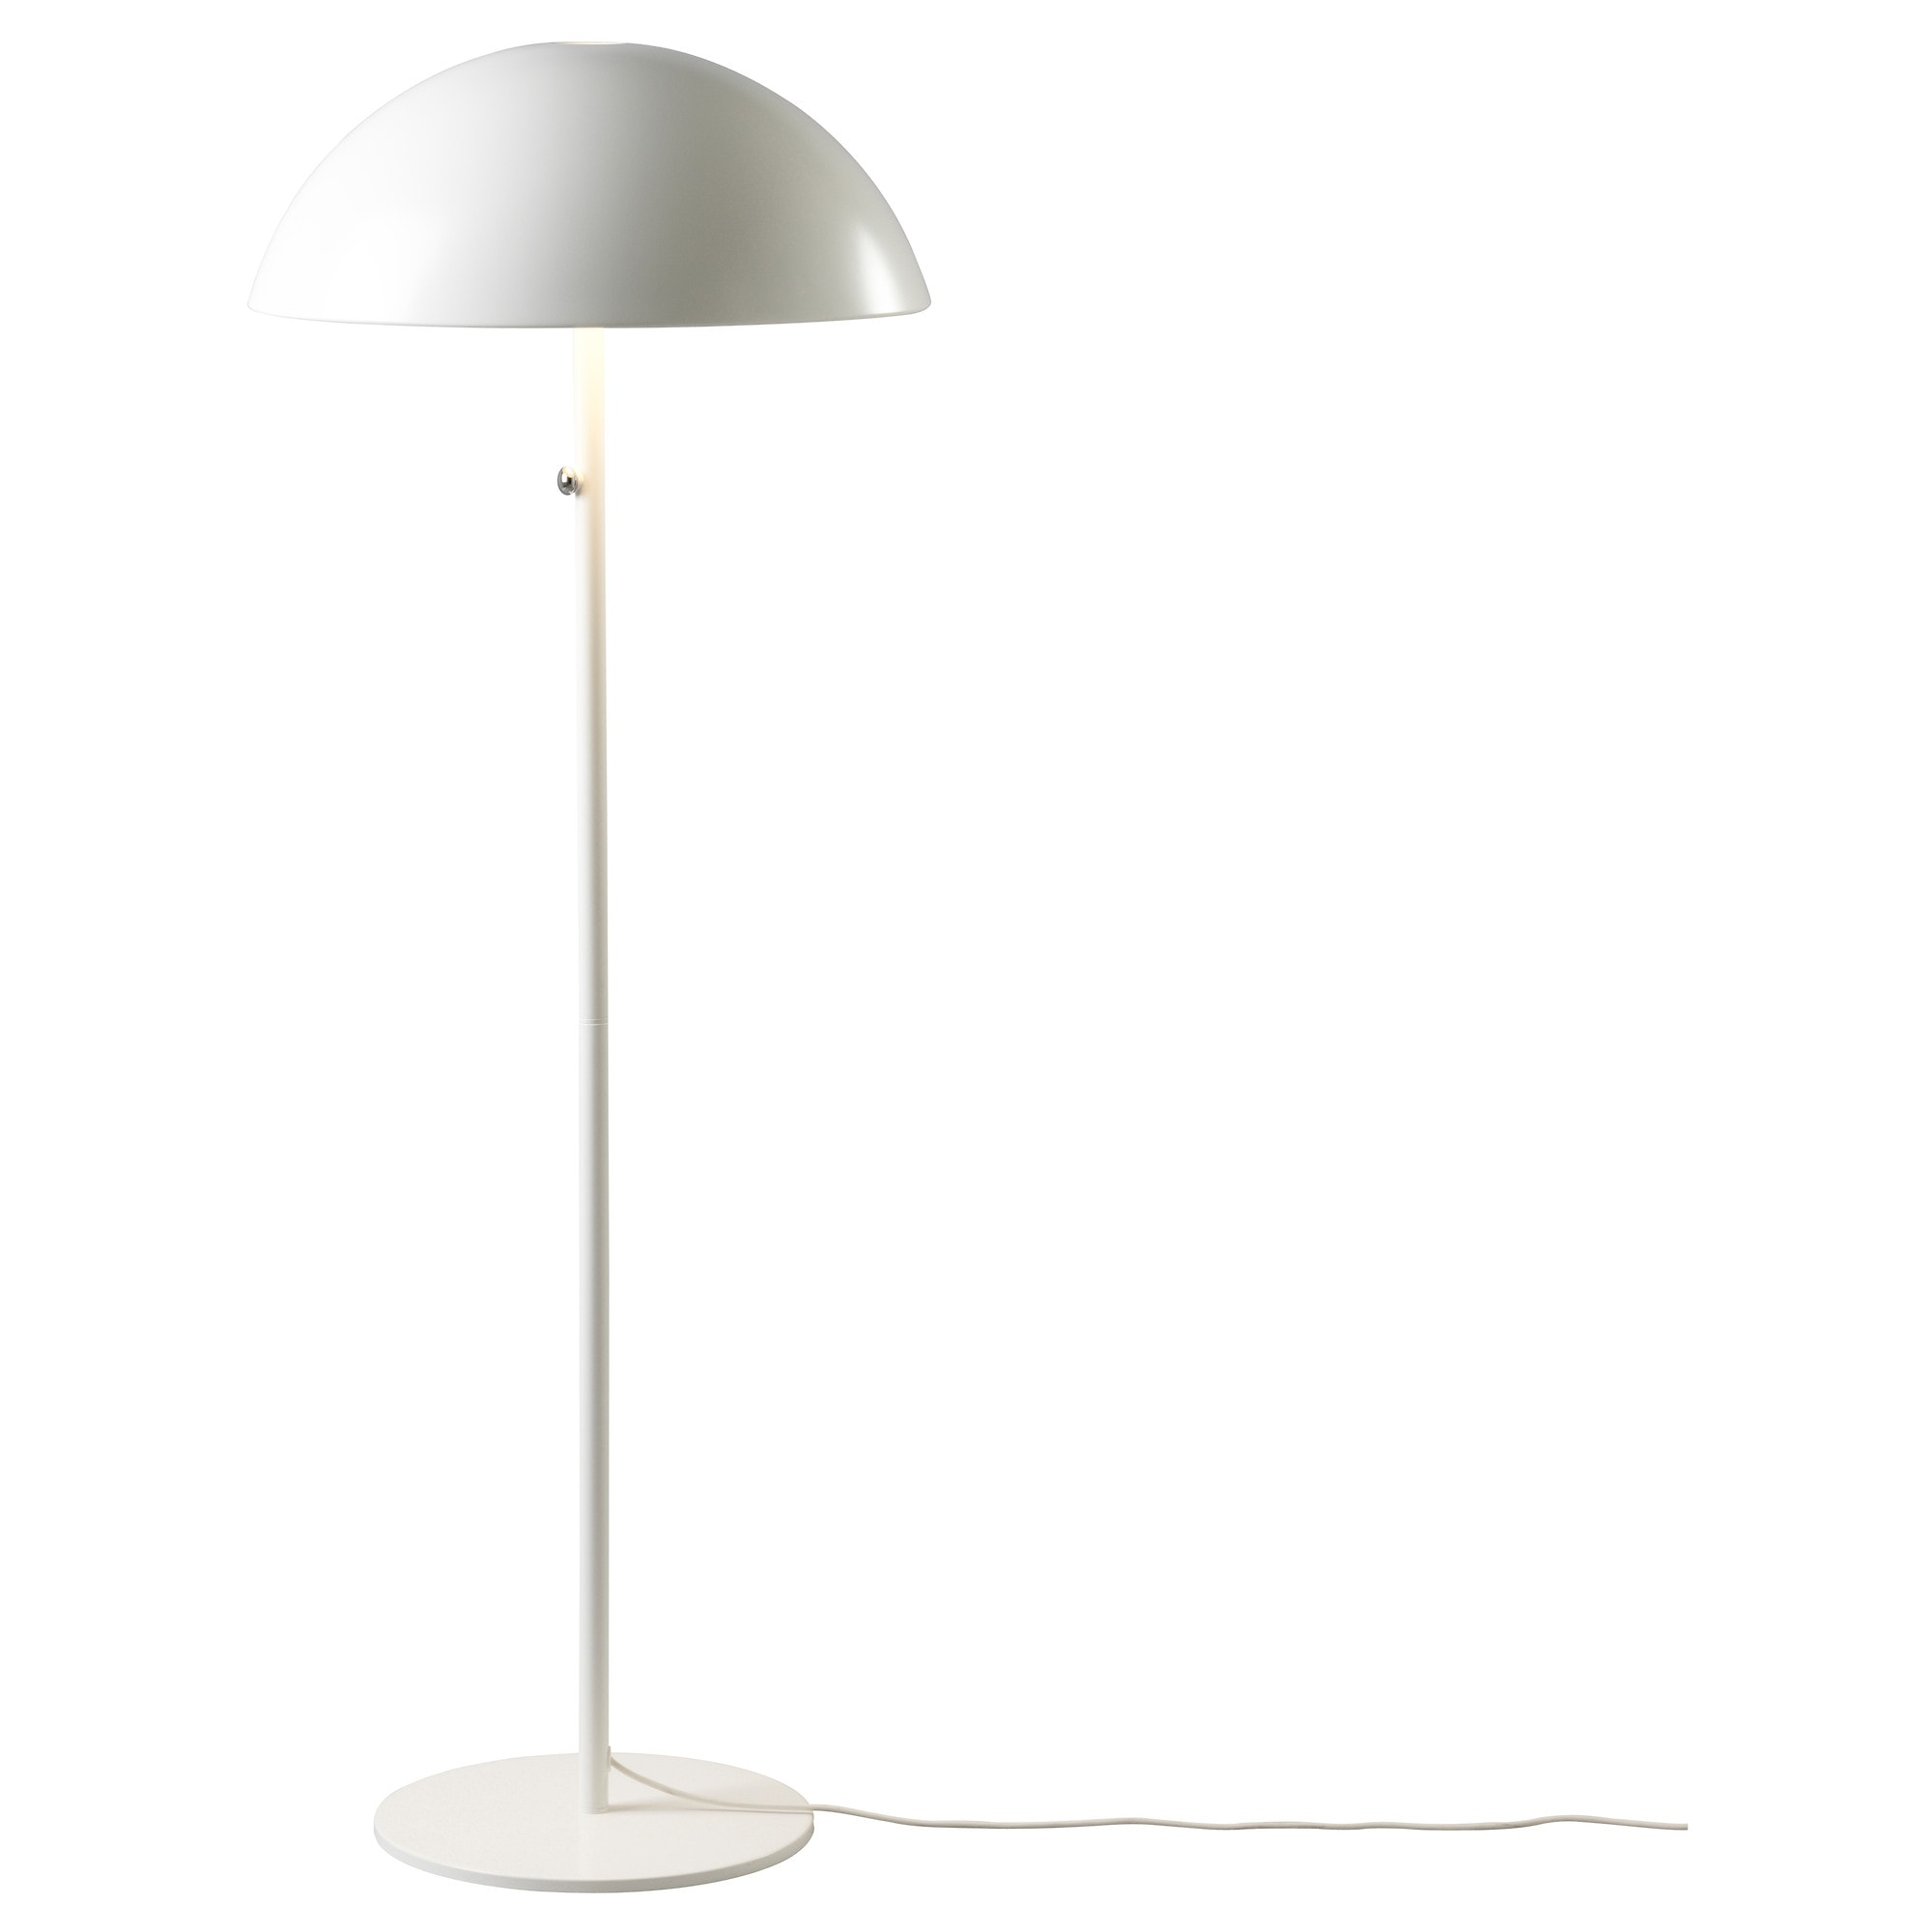 Ikea brasa floor lamp white - Arched floor lamp ikea ...